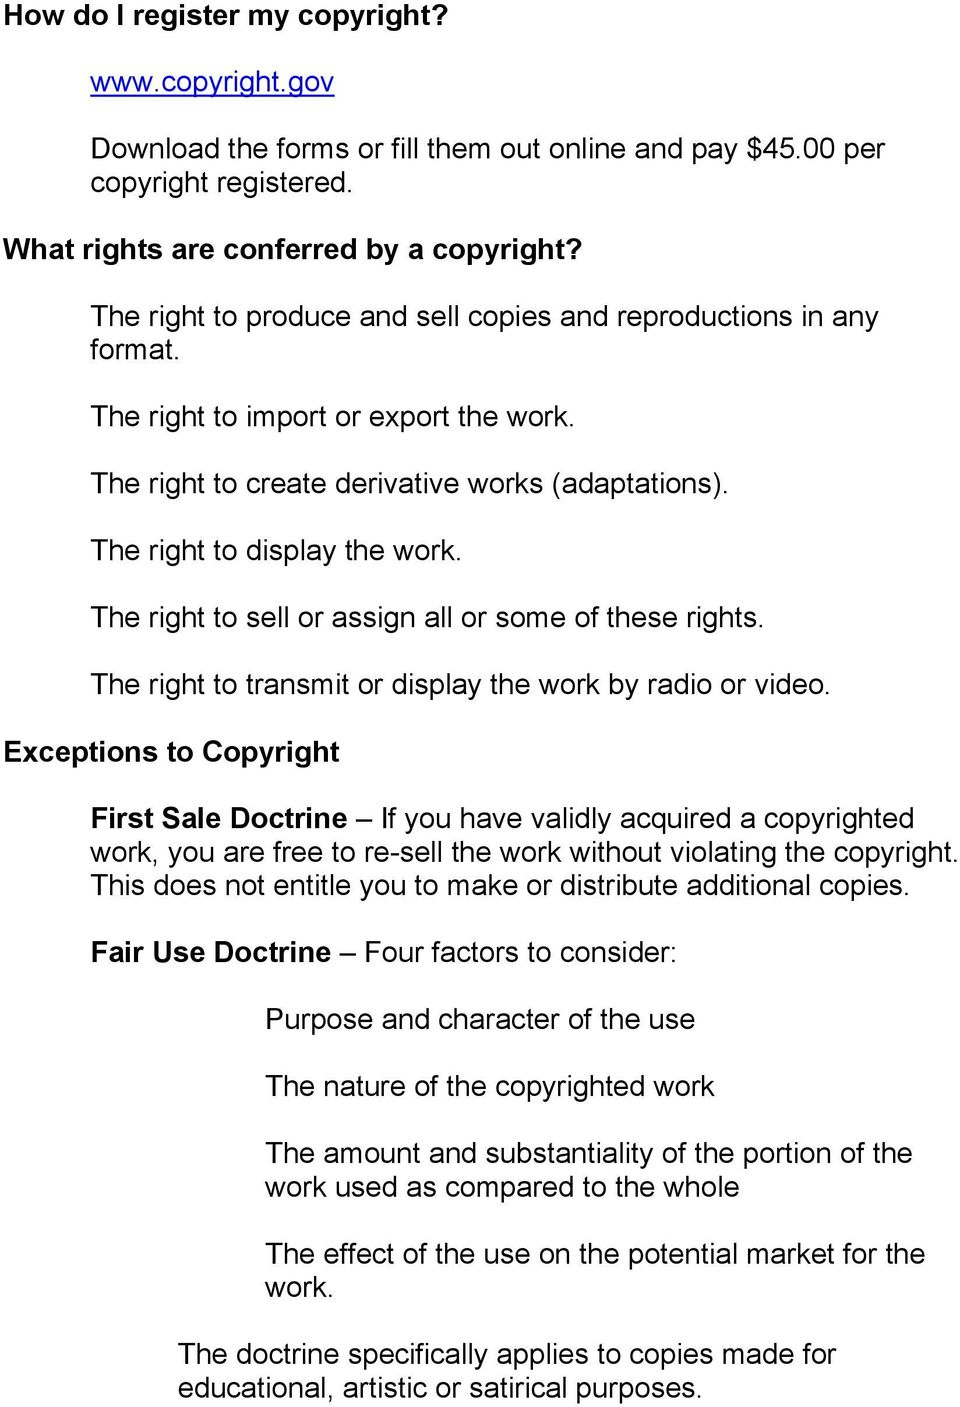 The right to sell or assign all or some of these rights. The right to transmit or display the work by radio or video.